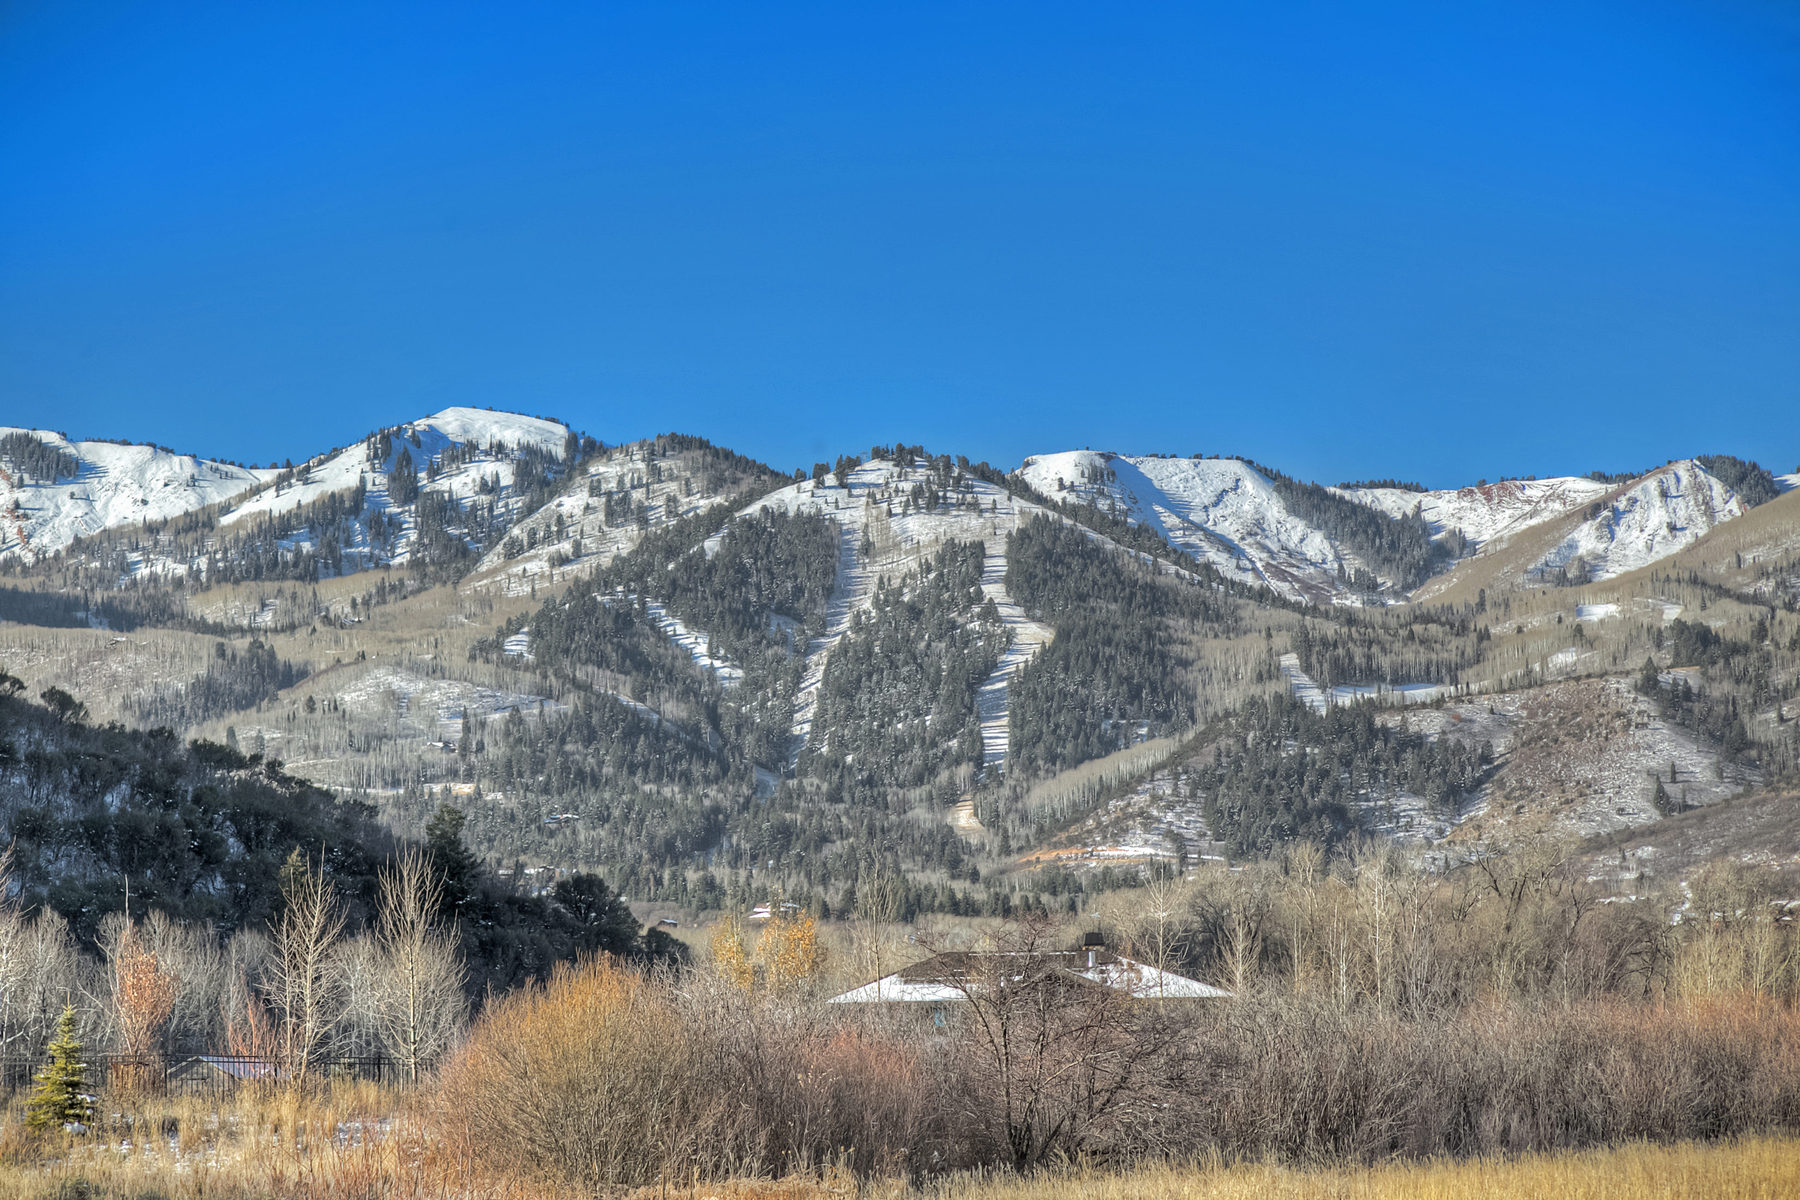 Đất đai vì Bán tại Over 5 Acres, Quarry Mountain Ranch Homesite 3983 Quarry Mountain Rd Park City, Utah 84098 Hoa Kỳ